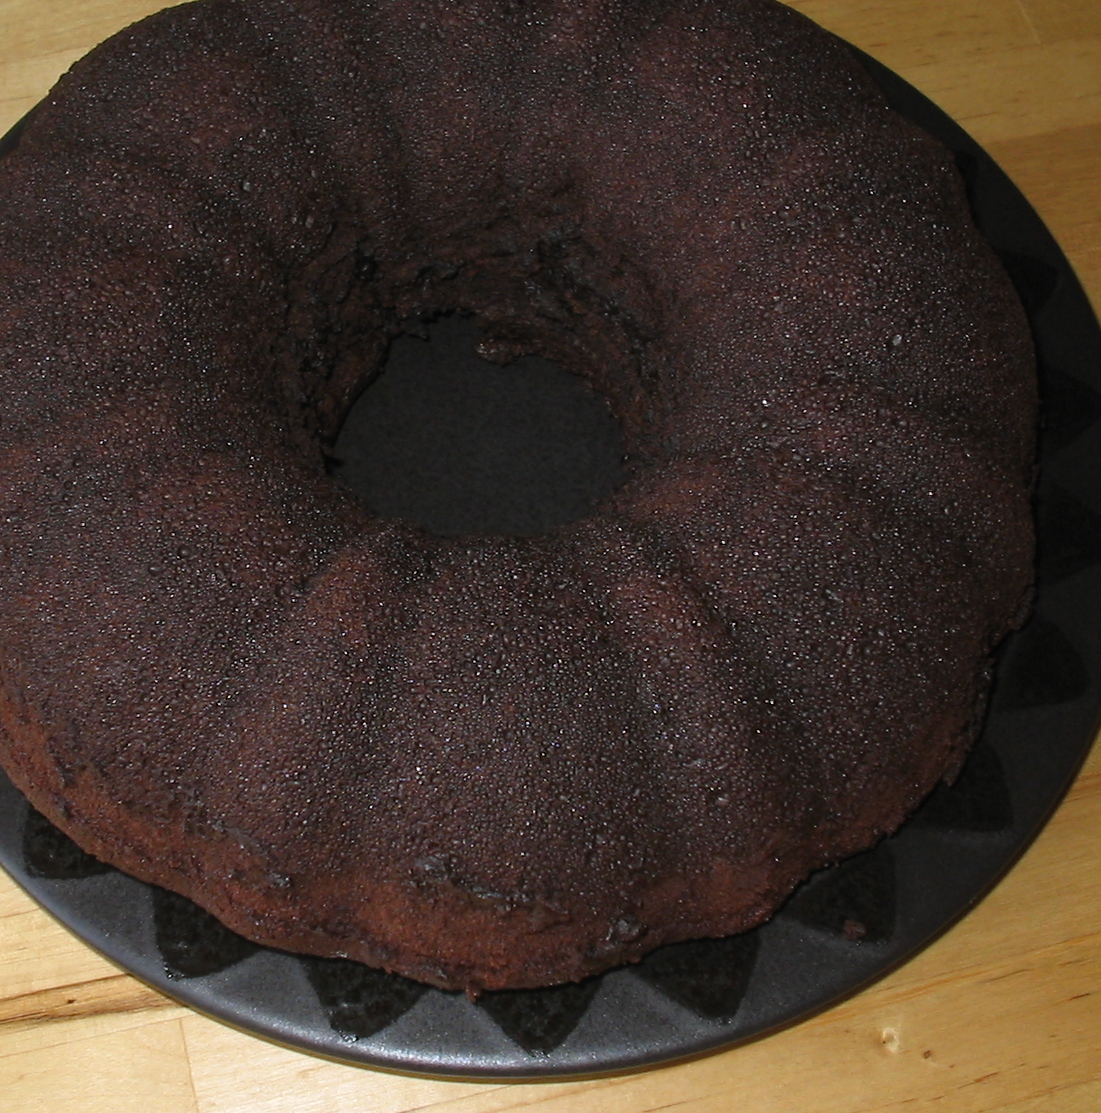 File:Chocolate Bundt cake.jpg - Wikipedia, the free encyclopedia